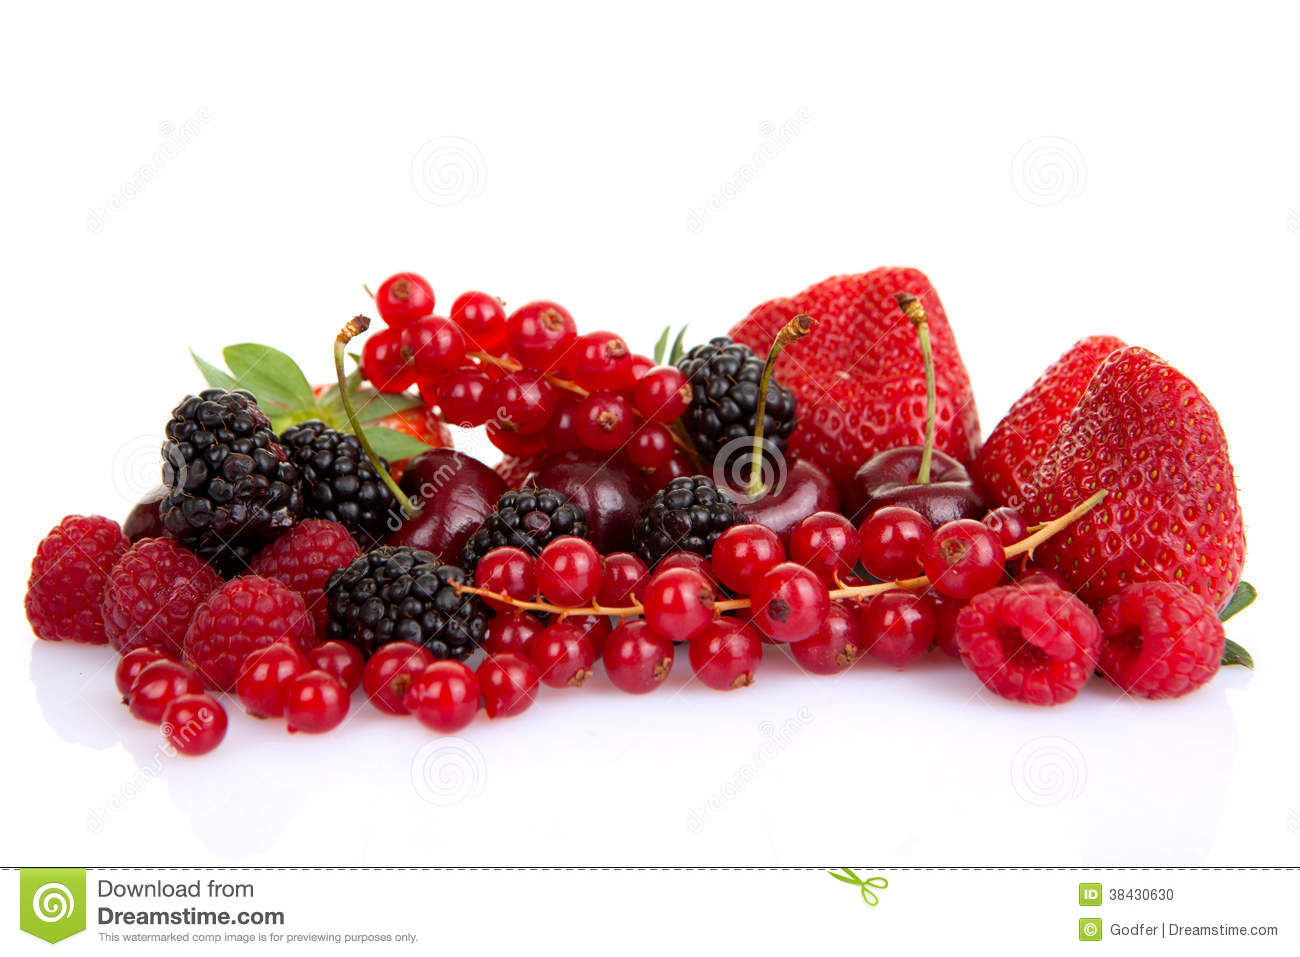 Pile of red summer fruits or berries